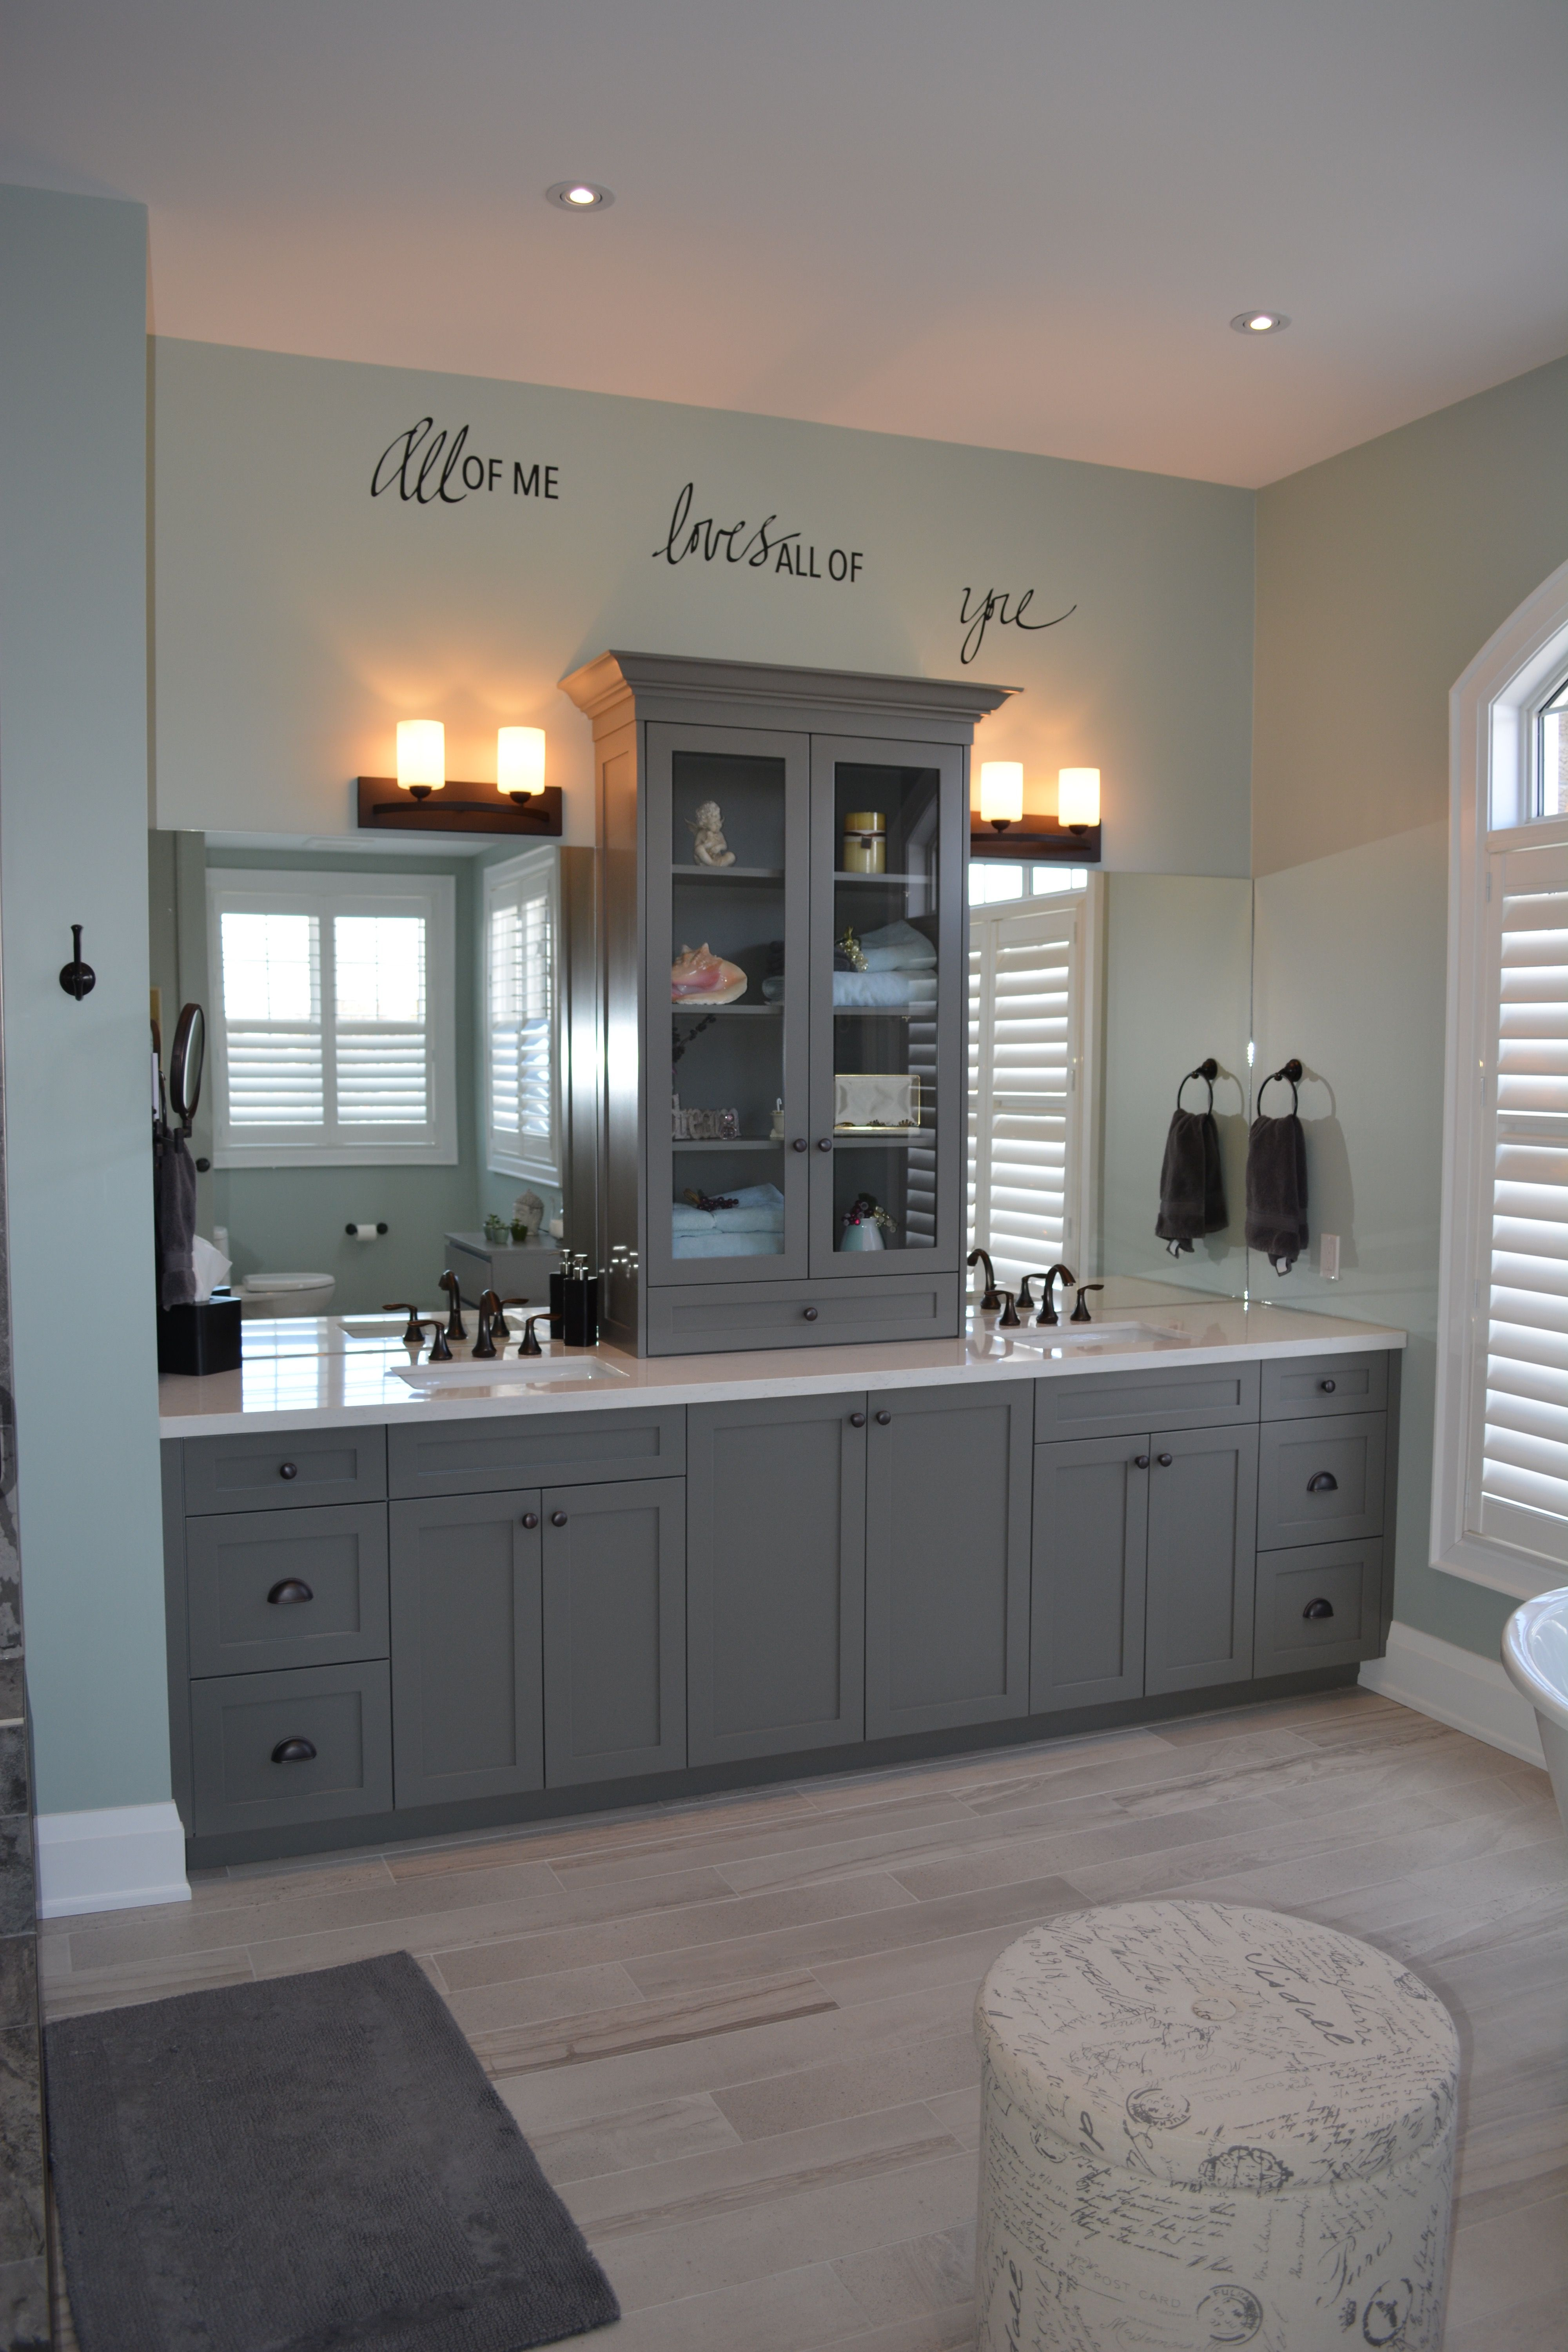 Master Bathroom With European Style Linen Tower On Quartz Countertop Under Mount Rectangular